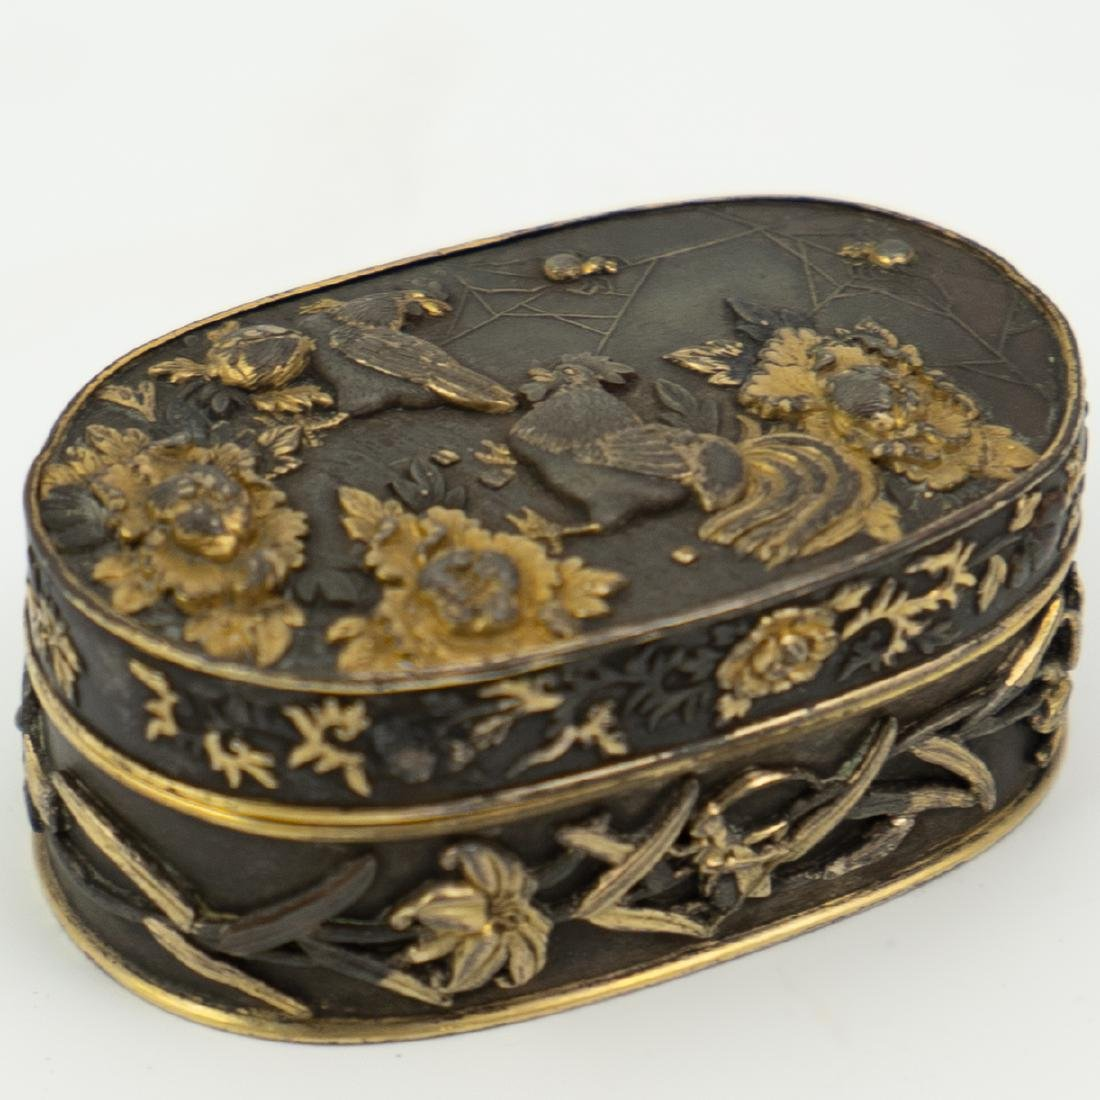 Japanese Meiji Period Bronze and Gold Box